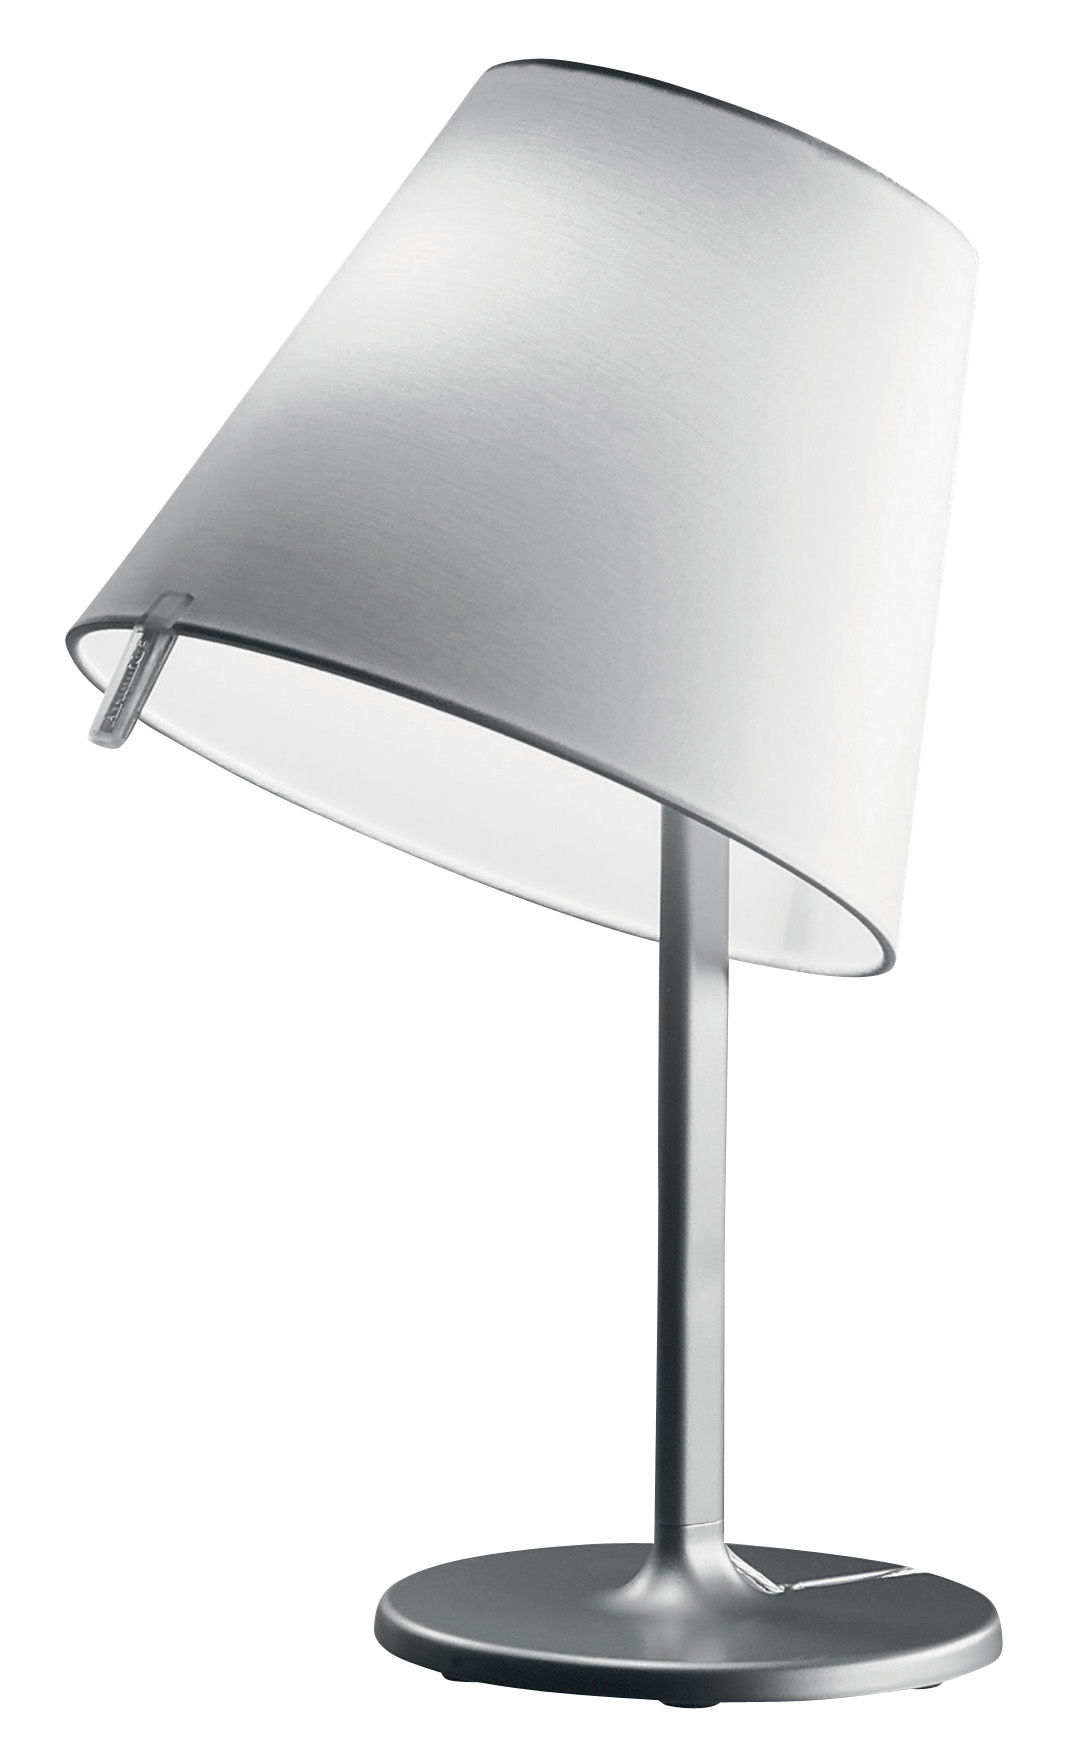 lampe de table melampo notte h 42 cm gris aluminium artemide made in design. Black Bedroom Furniture Sets. Home Design Ideas